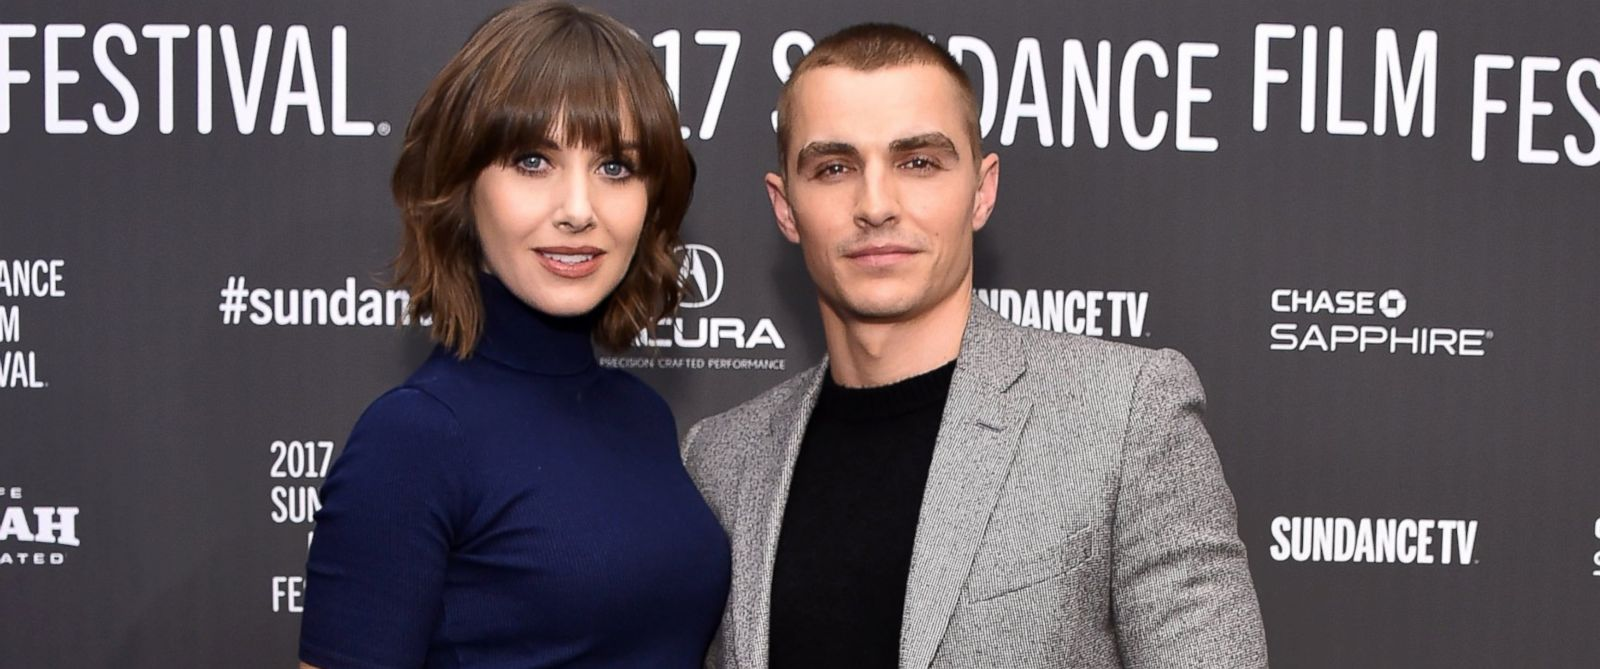 """PHOTO: Alison Brie and Dave Franco attend """"The Little Hours"""" premiere during day 1 of the 2017 Sundance Film Festival, Jan. 19, 2017, in Park City, UT."""